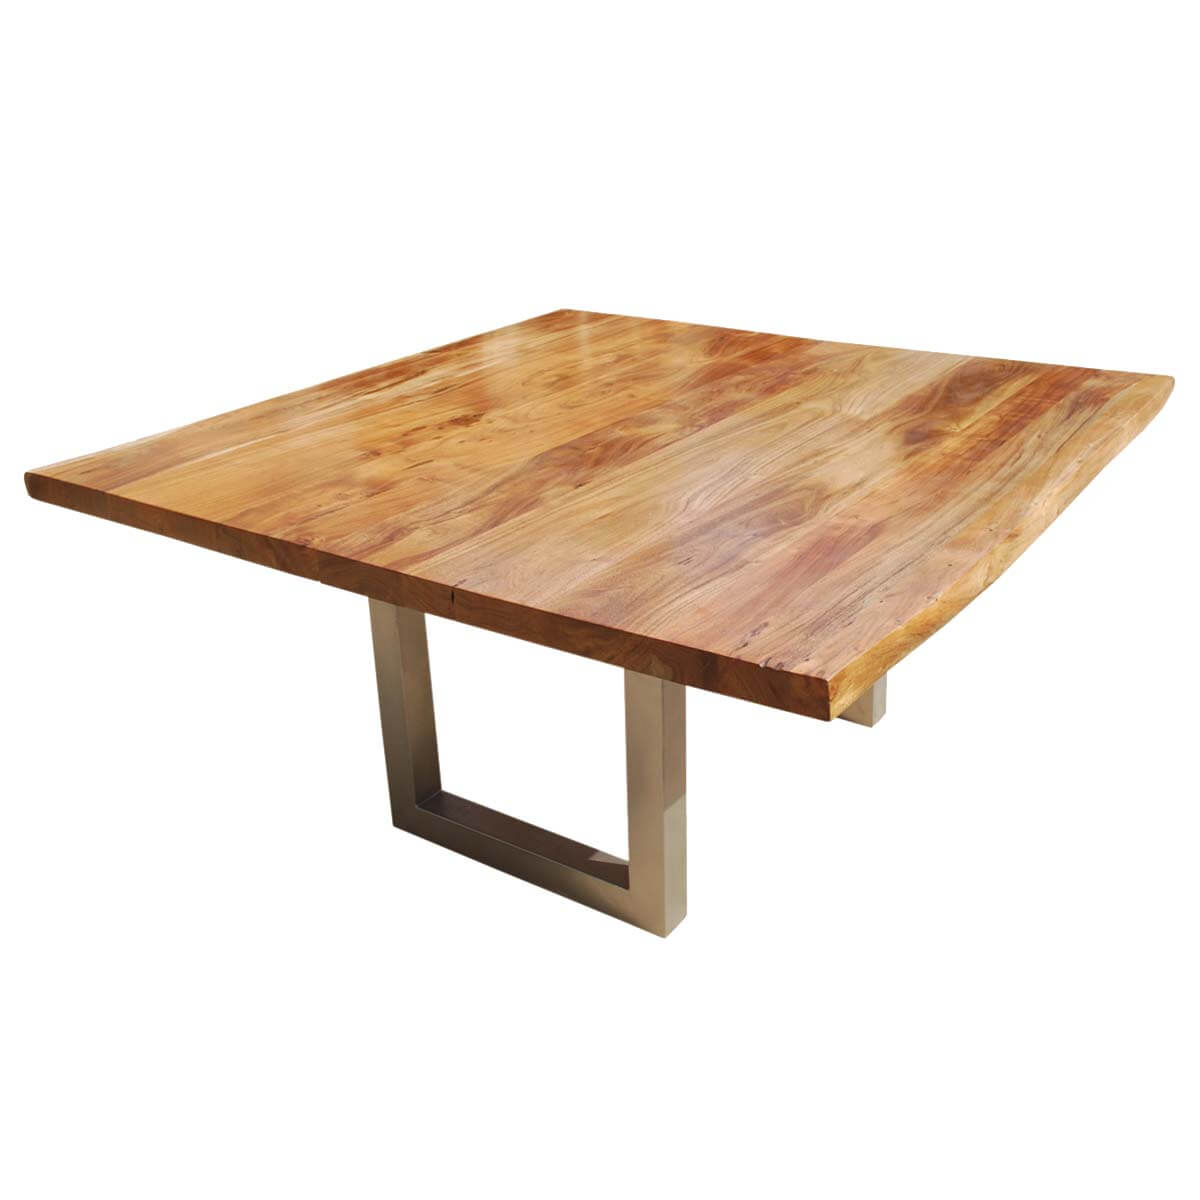 moab square acacia wood live edge rustic dining table. Black Bedroom Furniture Sets. Home Design Ideas